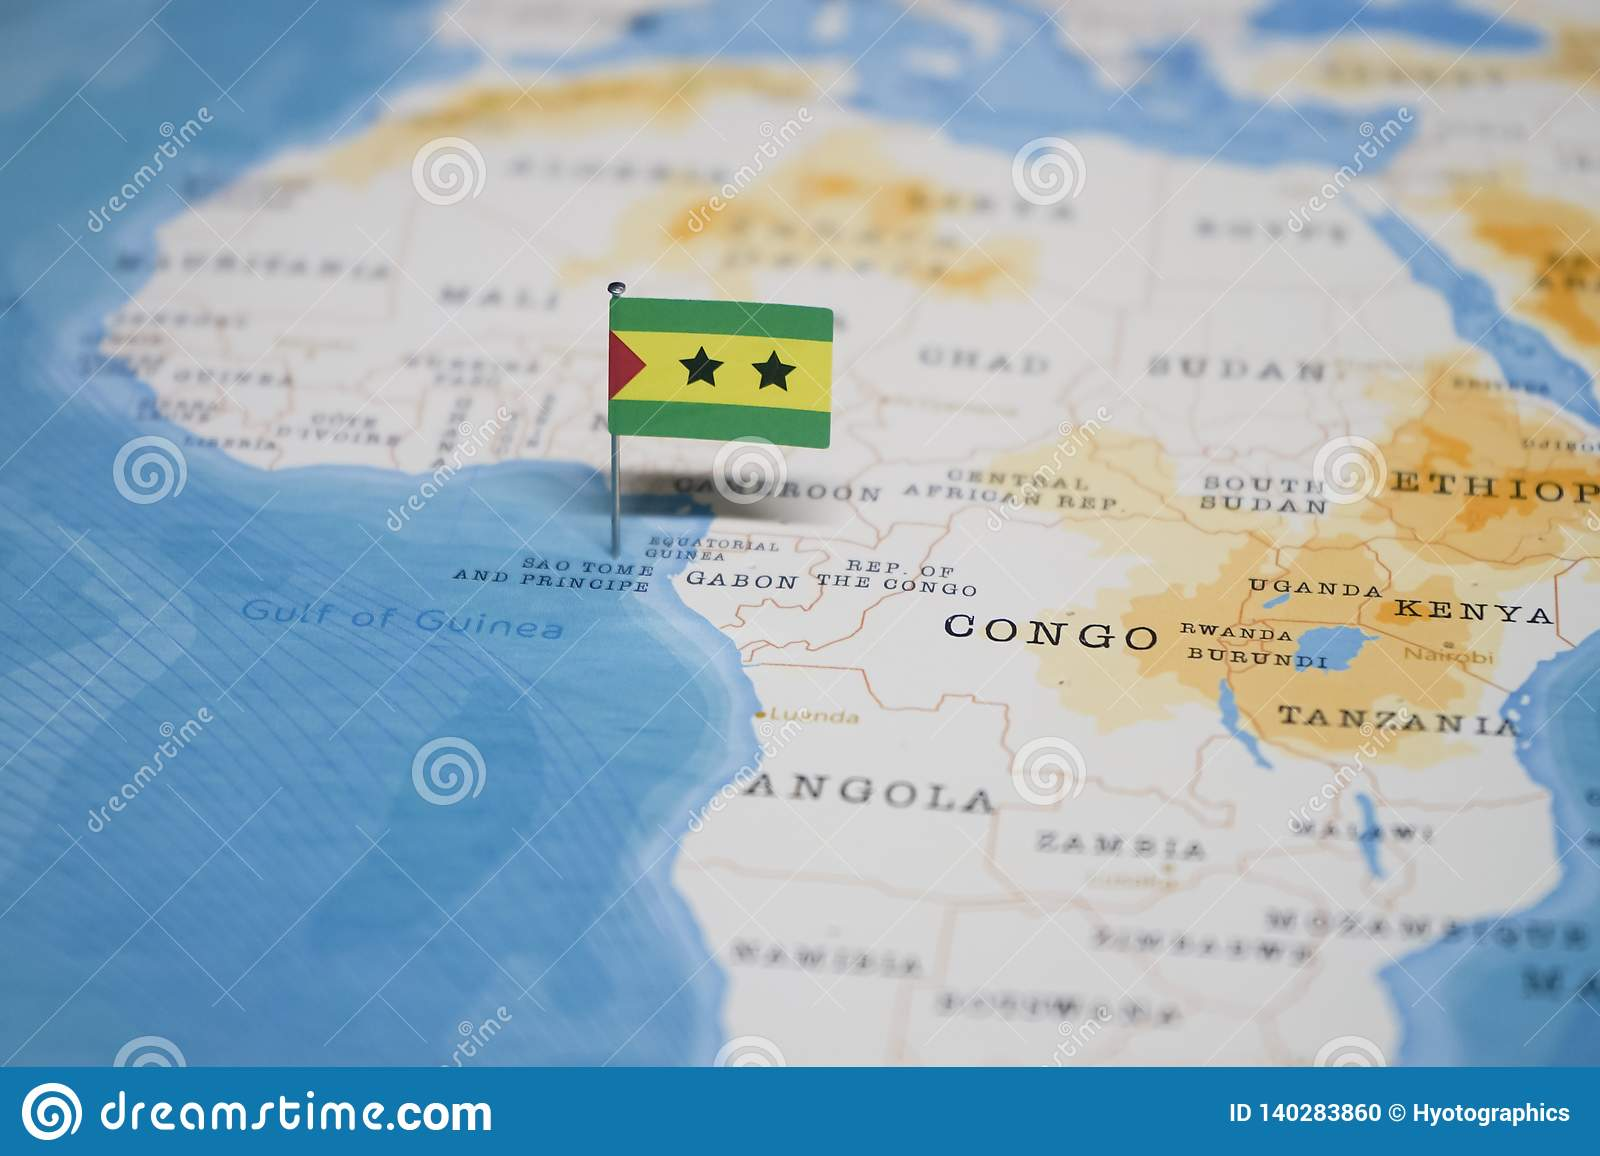 The Flag Of Sao Tome And Principe In The World Map Stock ... Sao Tome World Map on saudi arabia world map, mauritania world map, laos world map, liberia world map, japan world map, botswana world map, portugal world map, angola world map, switzerland world map, congo world map, norway world map, guantanamo bay world map, burundi world map, peru world map, bangladesh world map, denmark world map, tonga world map, brazil world map, france world map, n korea world map,